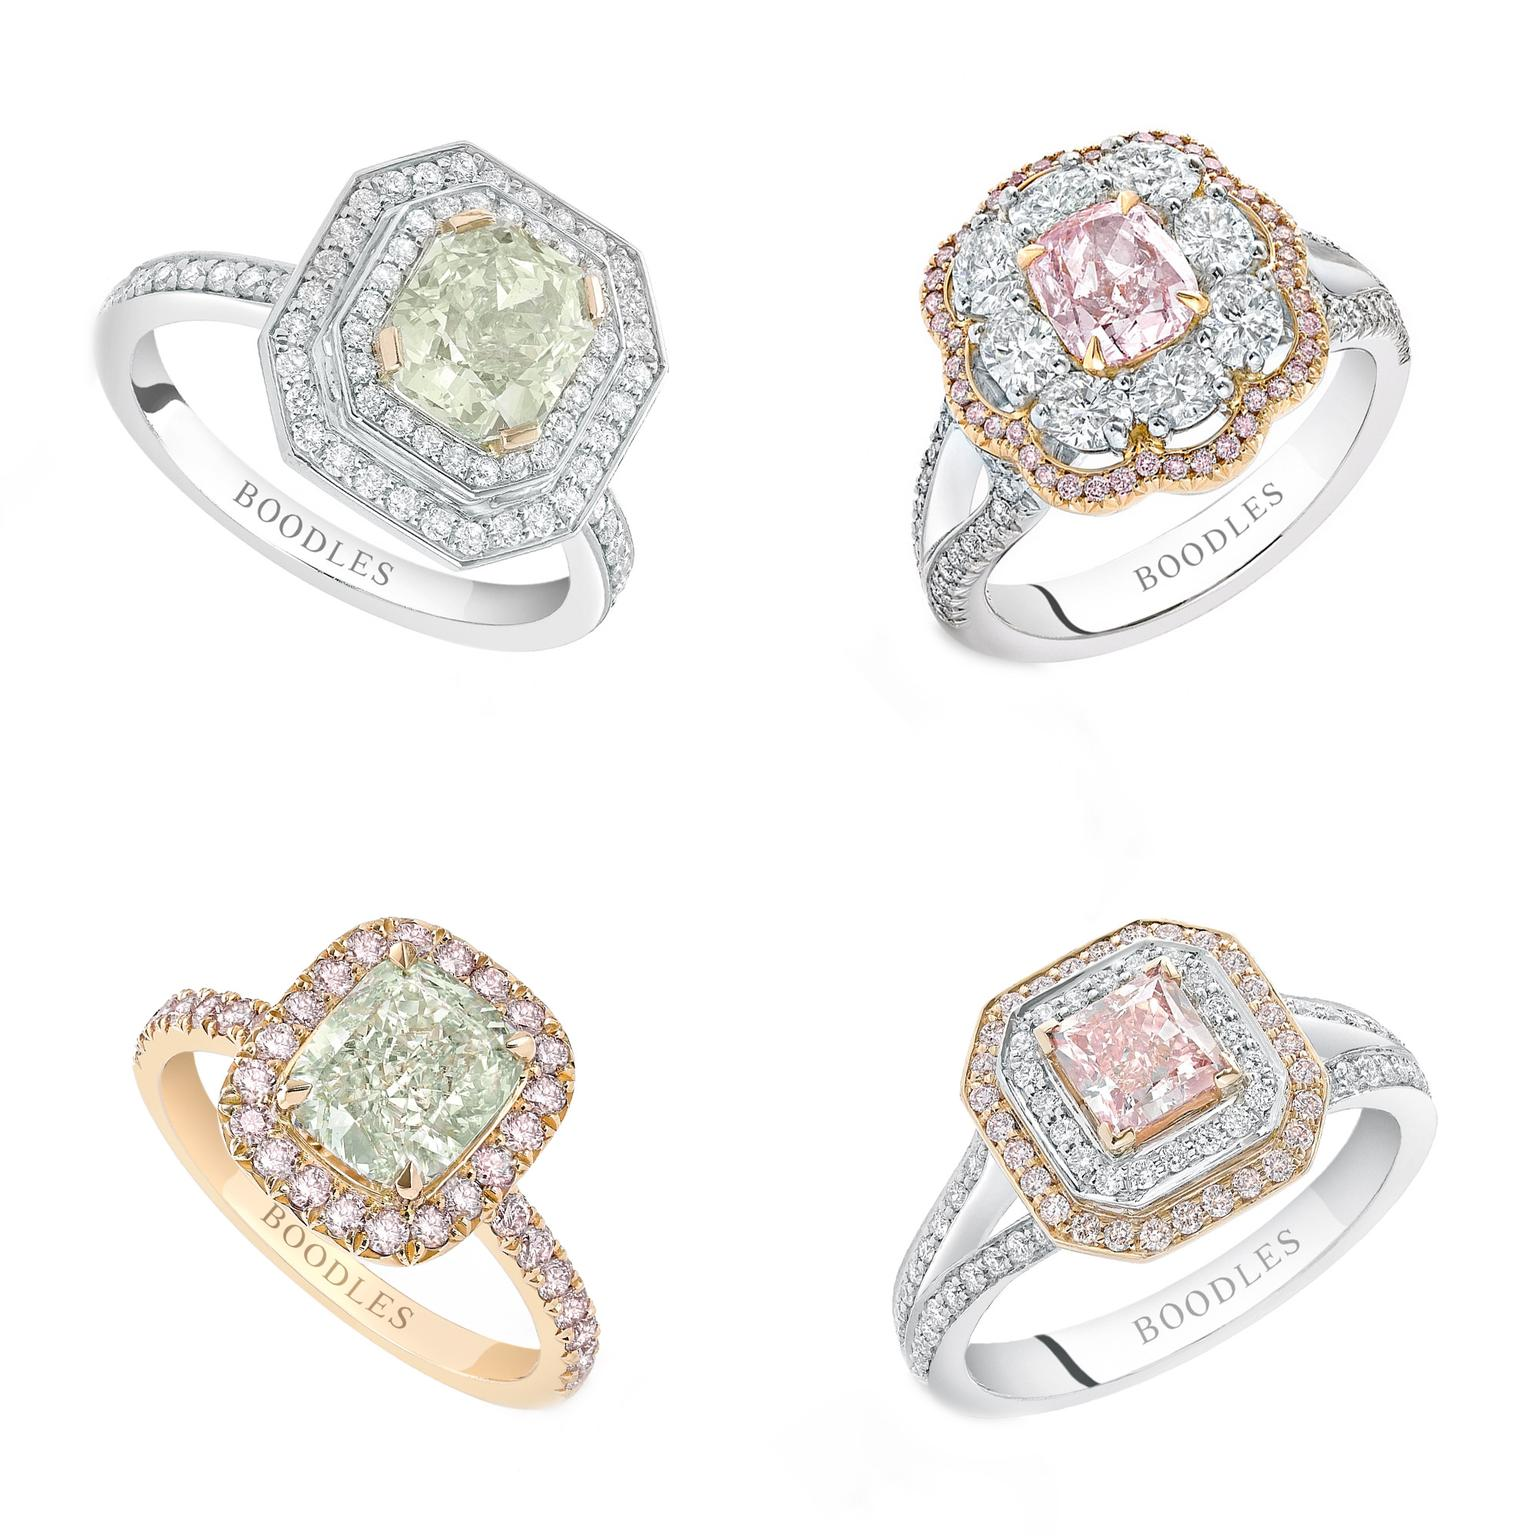 Collage of Boodles coloured diamond rings